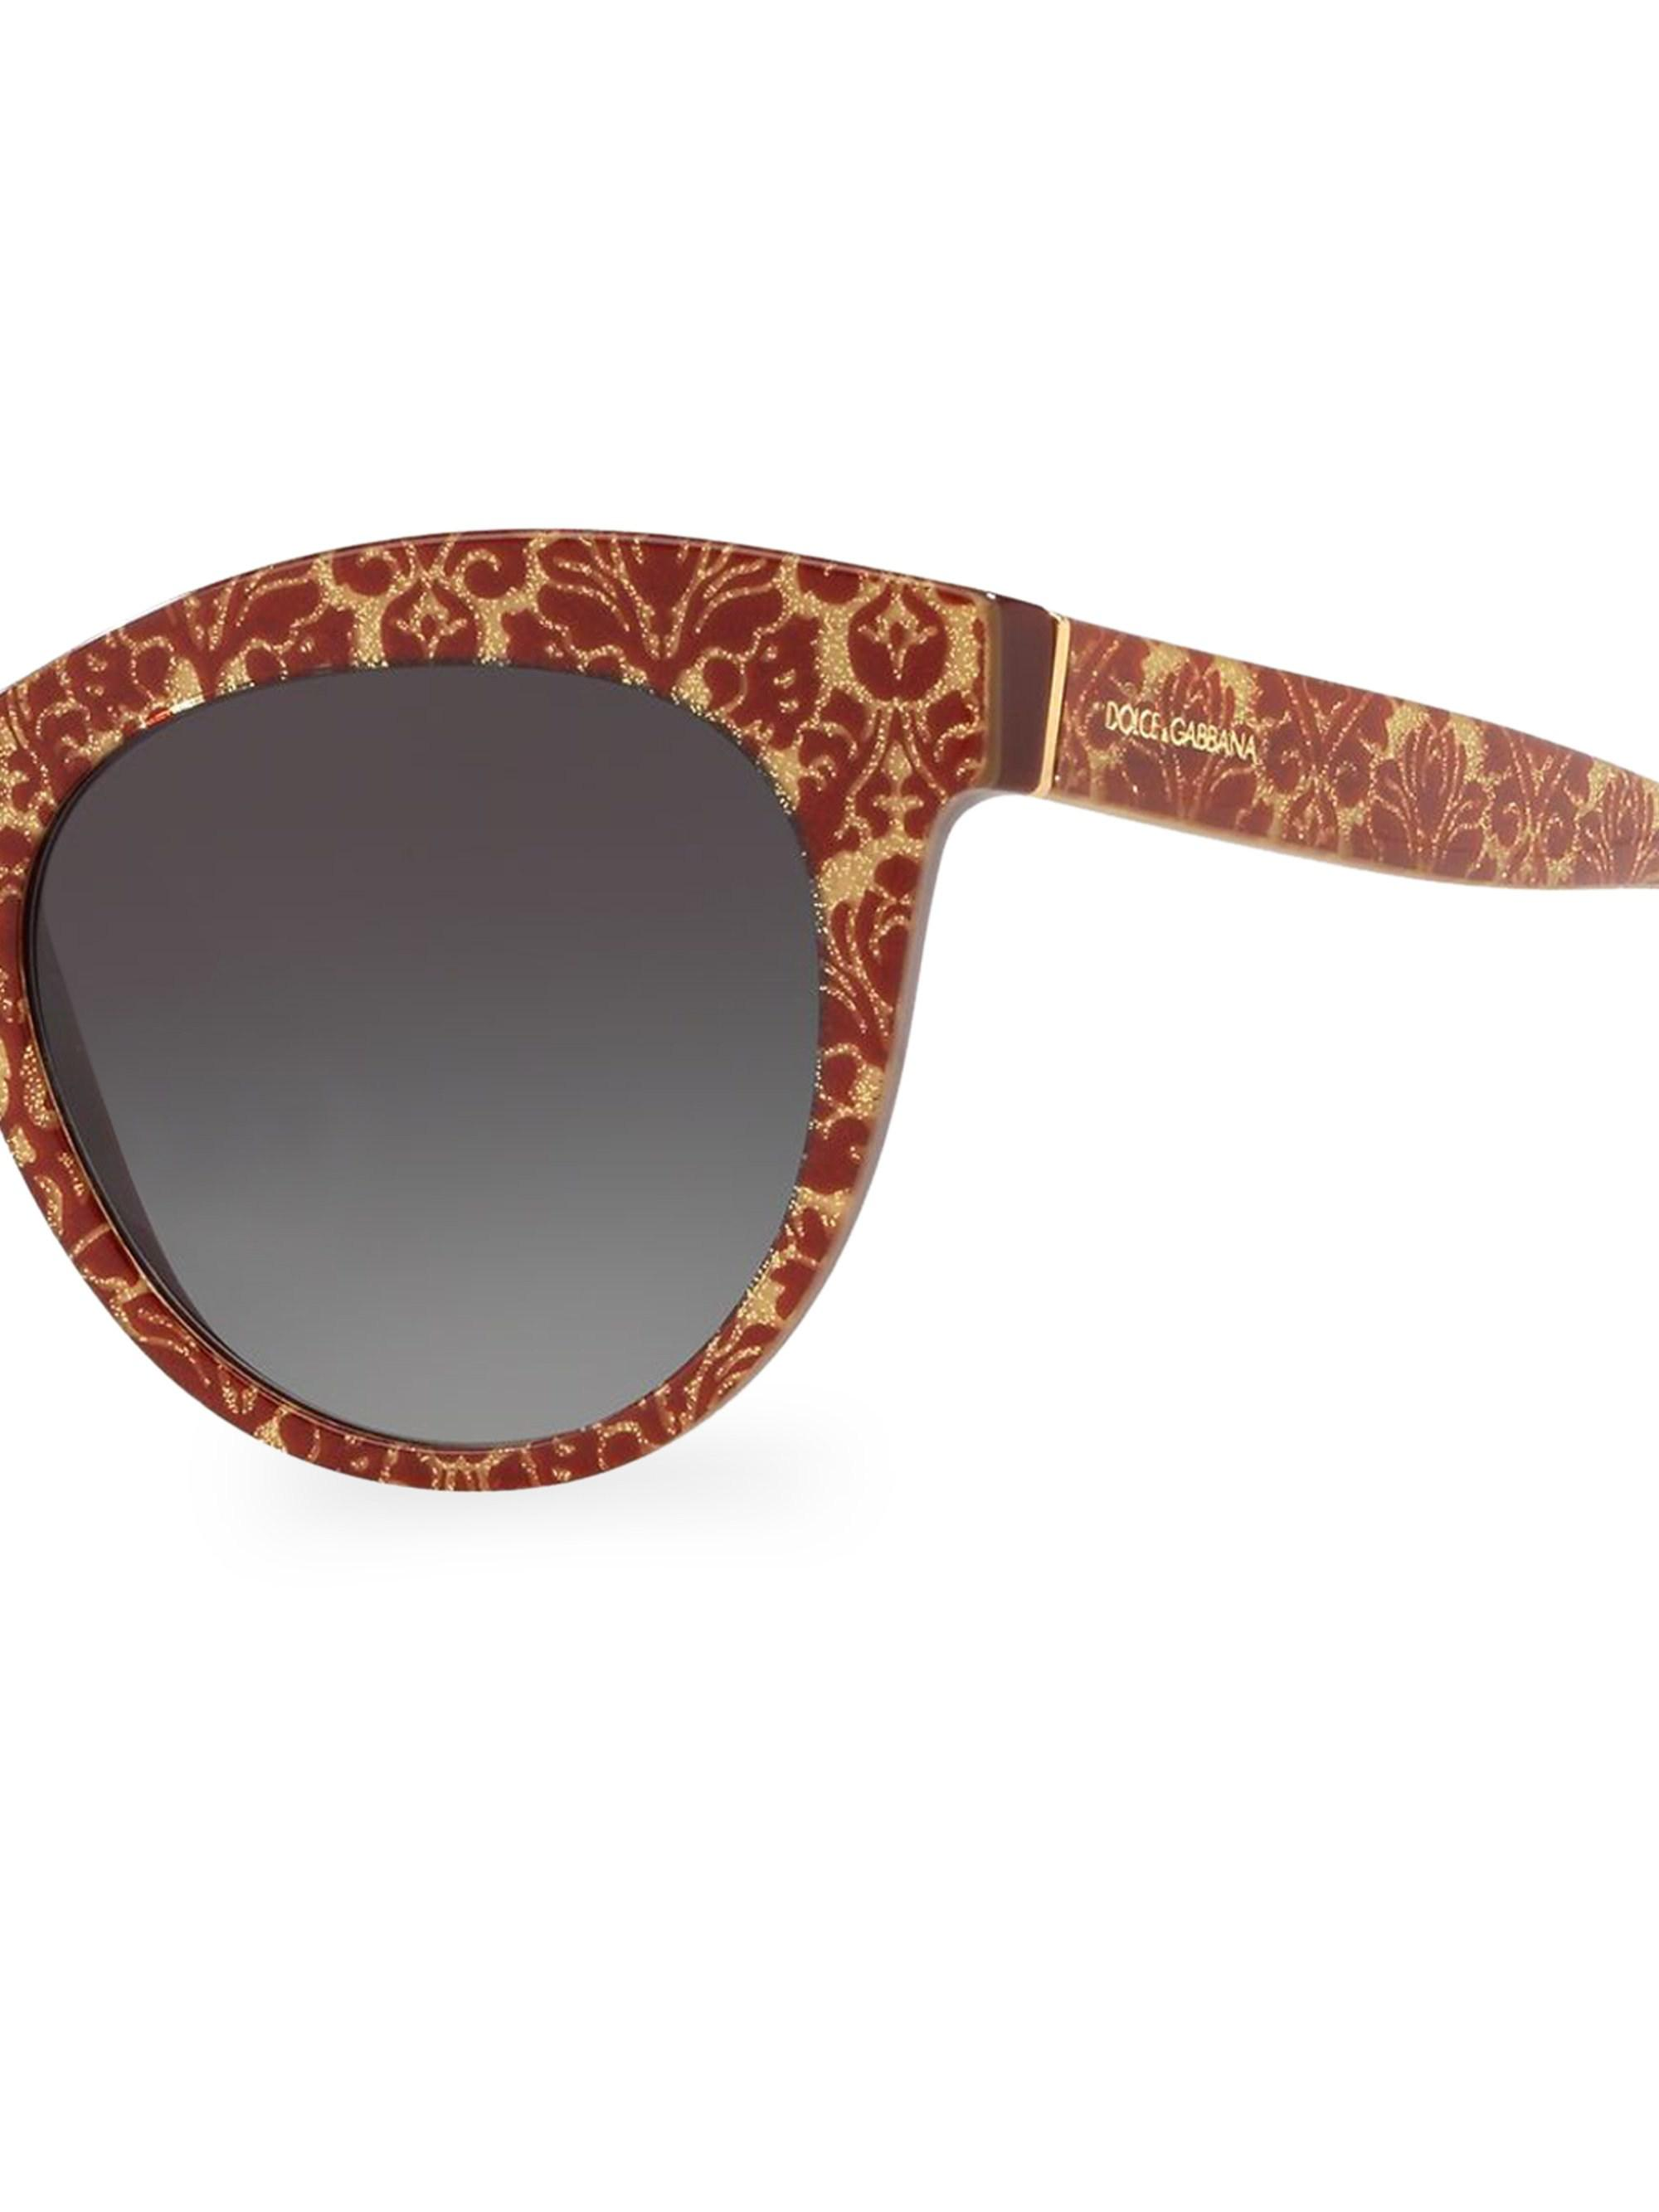 1374de3194e4 Dolce   Gabbana - Metallic Dg4311 Glitter Floral 51mm Cat Eye Sunglasses -  Lyst. View fullscreen